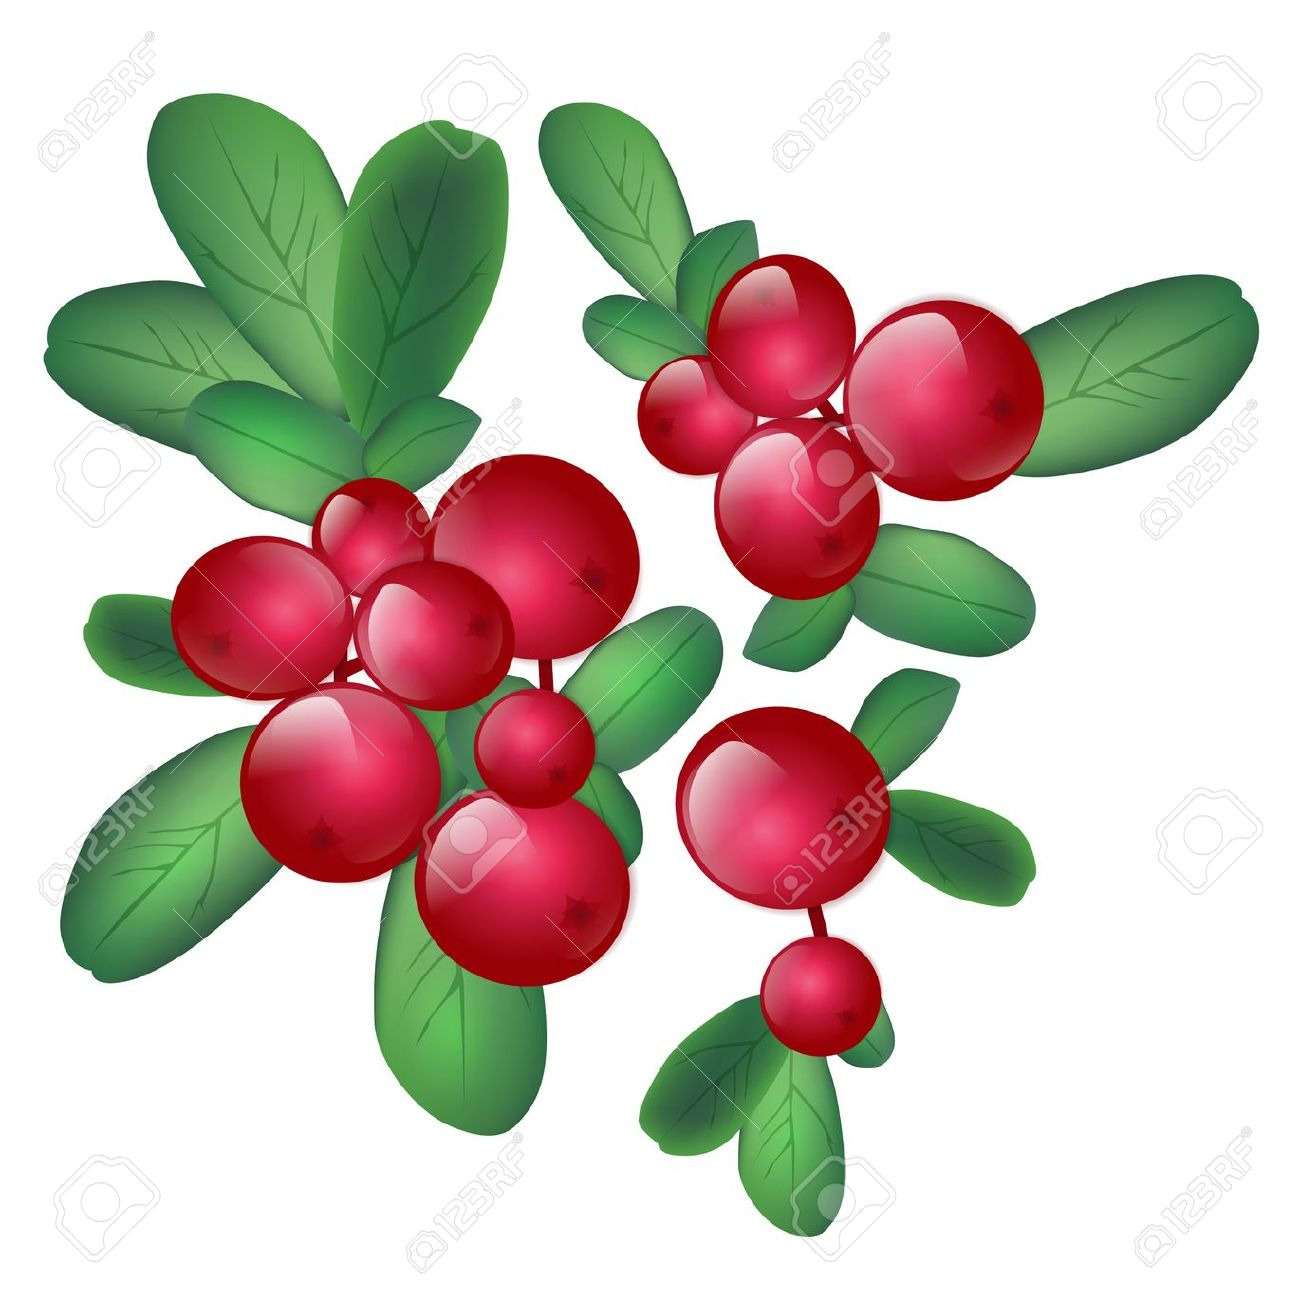 Wild berries clipart.